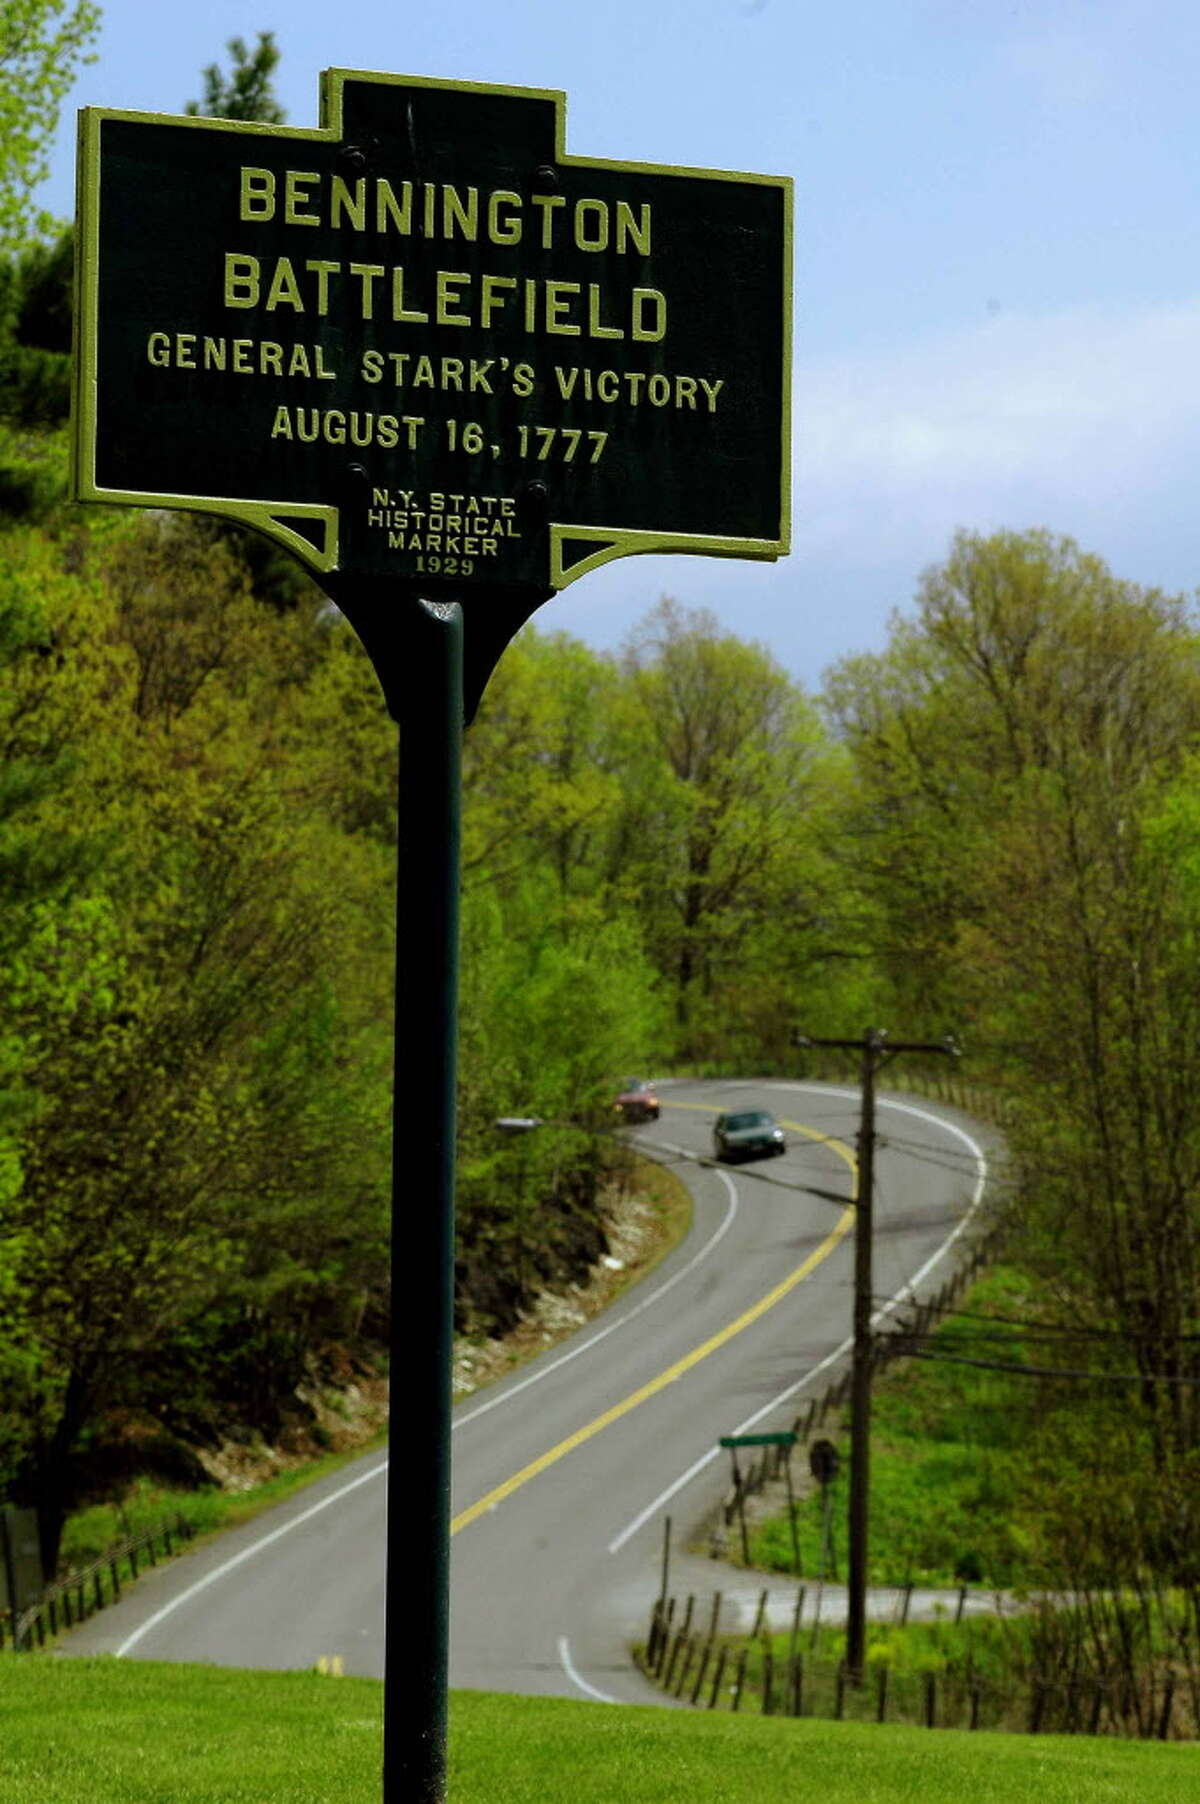 The Bennington Battlefield is a short distance east of Route 22 on Route 67 in Walloomsac. It is here that a British force in 1777 was defeated by militias from New York and New England in a battle that helped turn the tide for the Continental Army.